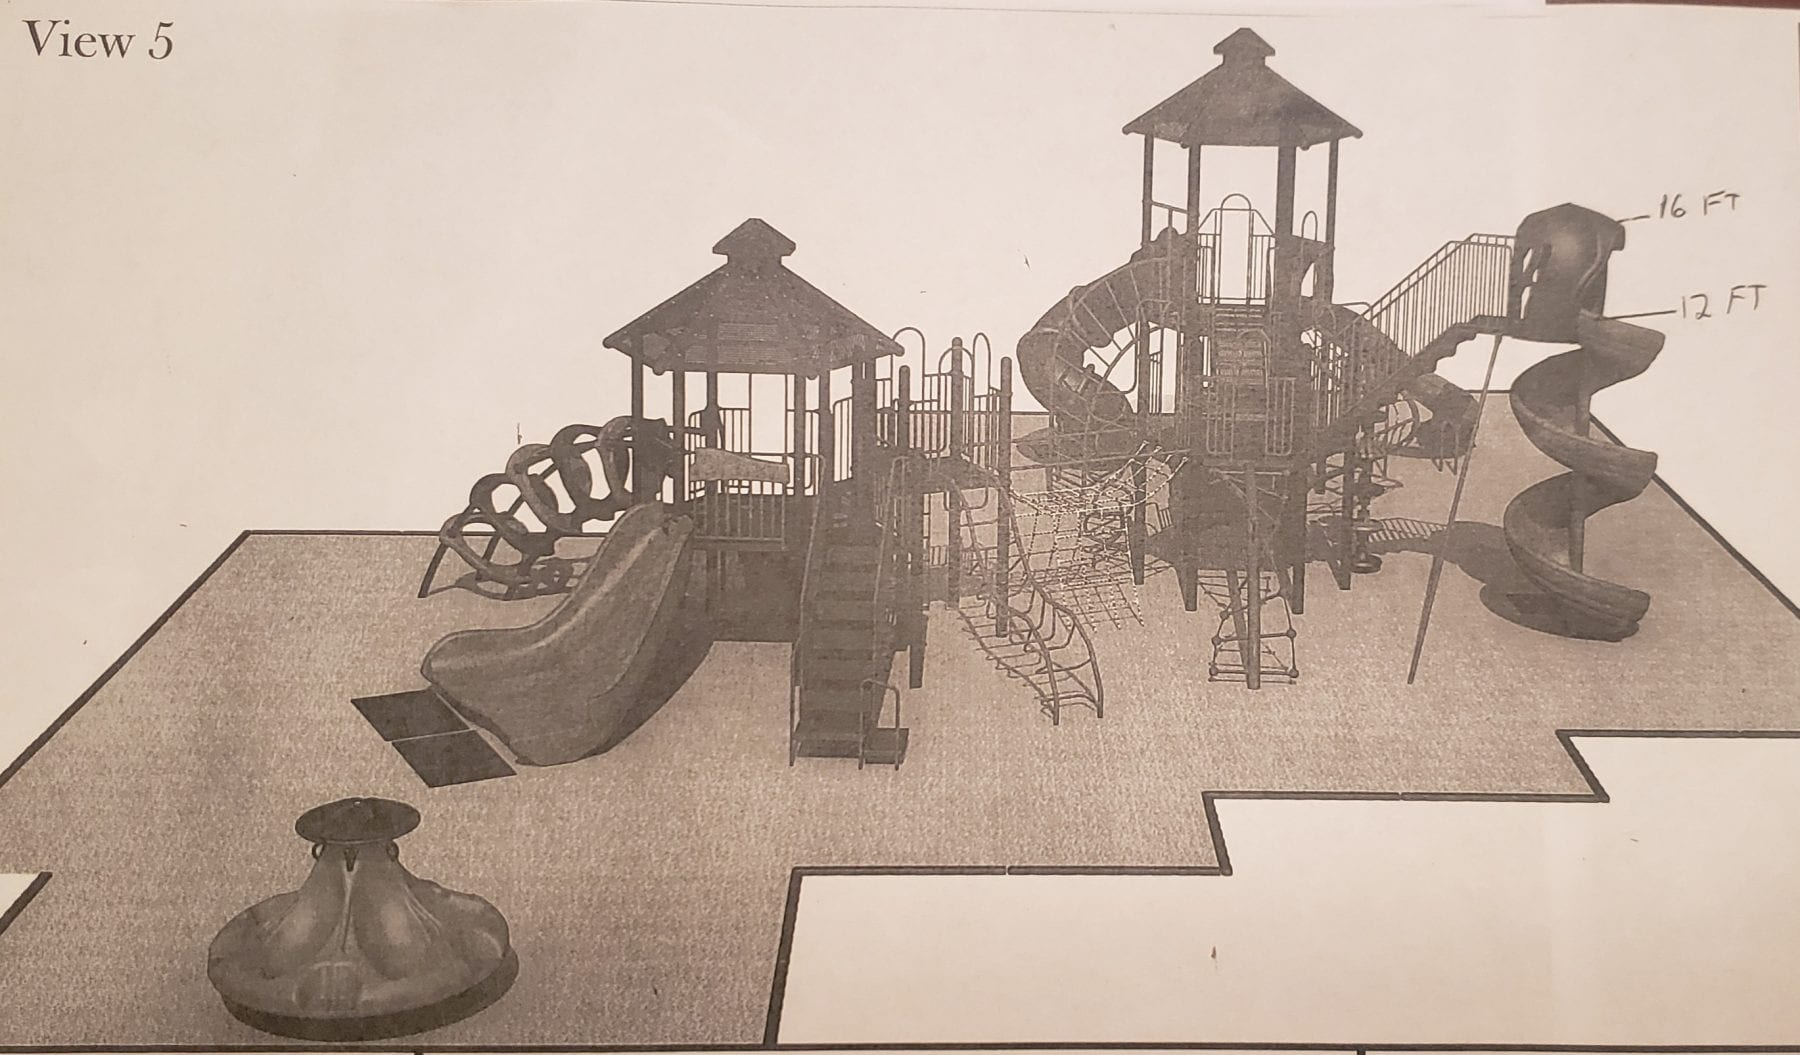 Blue Ridge, Georgia, Fannin County, Playground, Park, City Council, City, Mayor, Planning, Zoning and Project Manager, Attorney, Donna Whitener, Rhonda Haight, Nathan Fitts, Robbie Cornelius, Mike Panter, Harold Herndon, Jeff Stewart, James Balli, Legal, Safety, Reopen